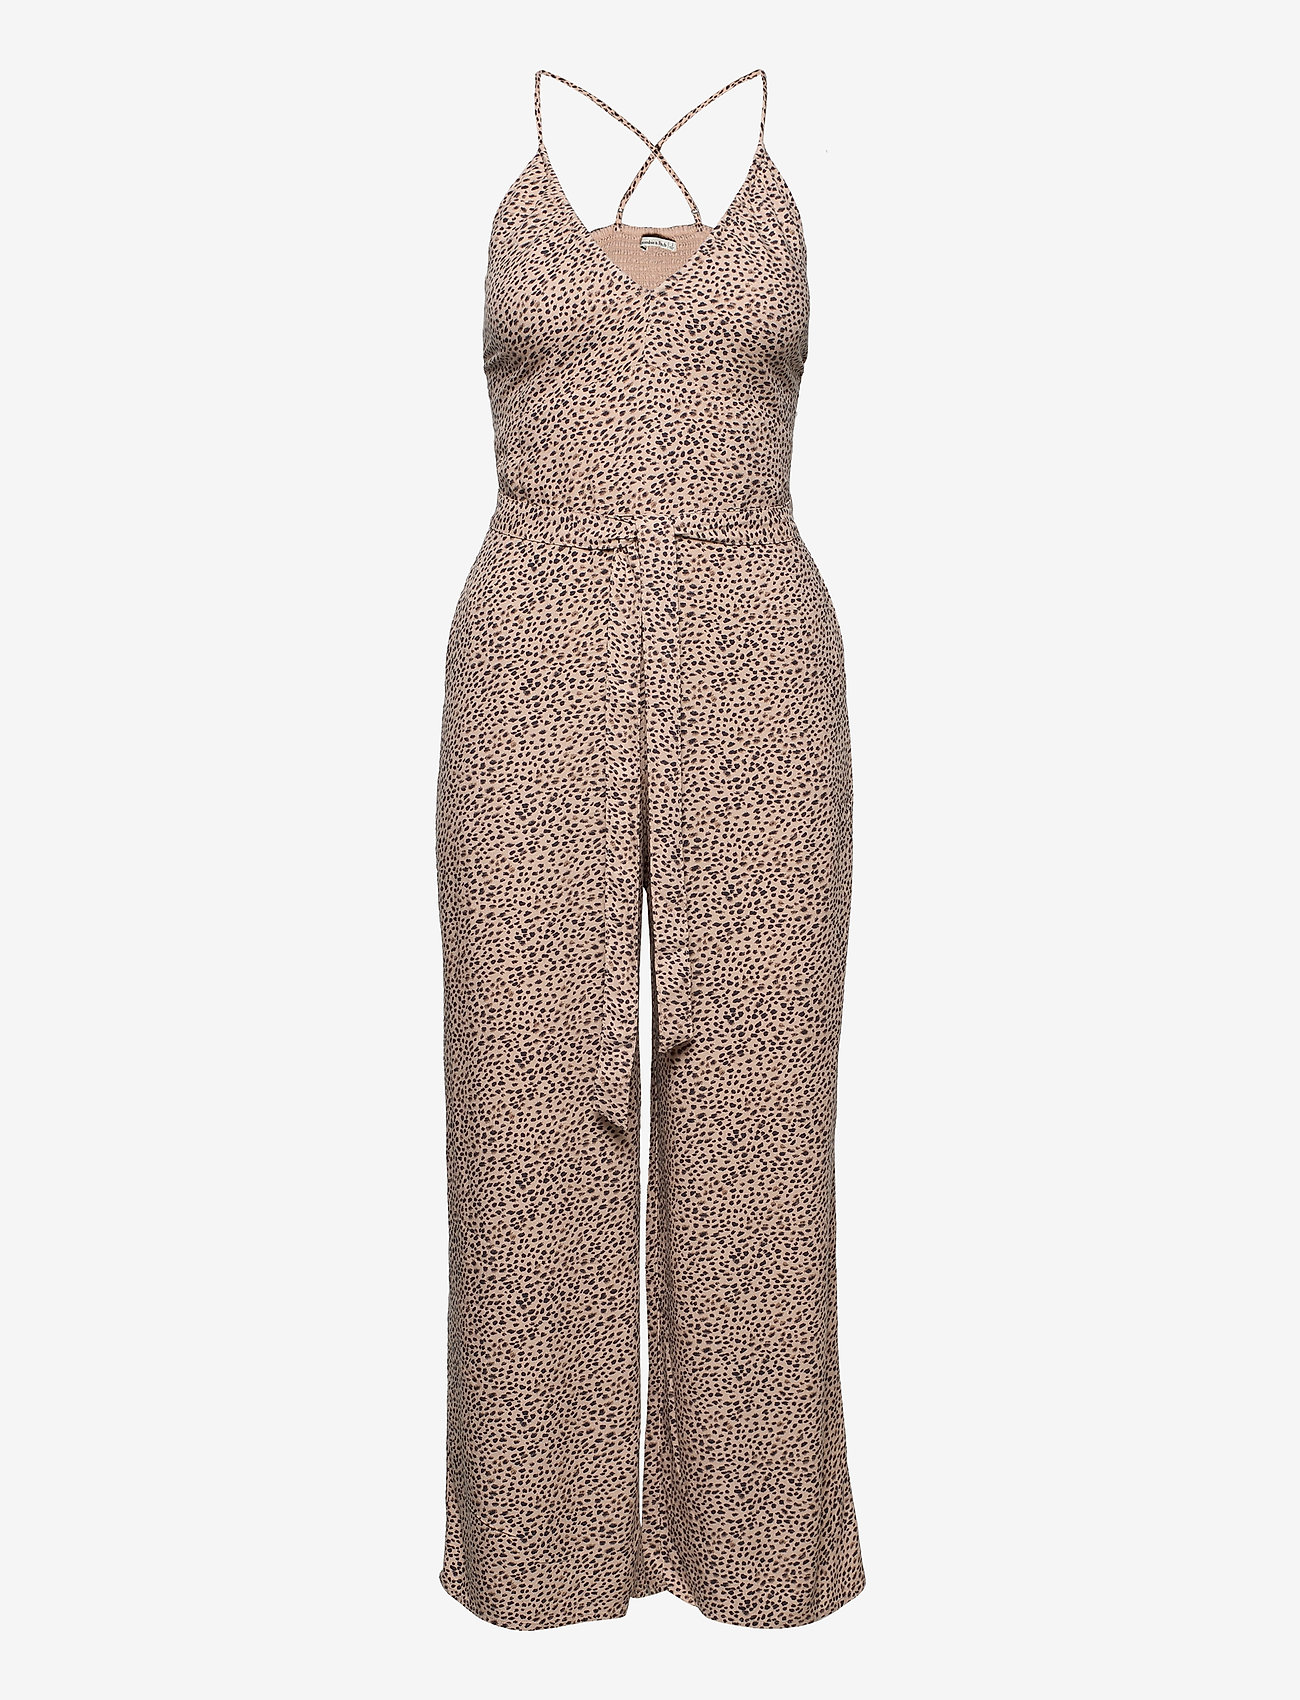 Abercrombie & Fitch - ANF WOMENS DRESSES - jumpsuits - animal - 0